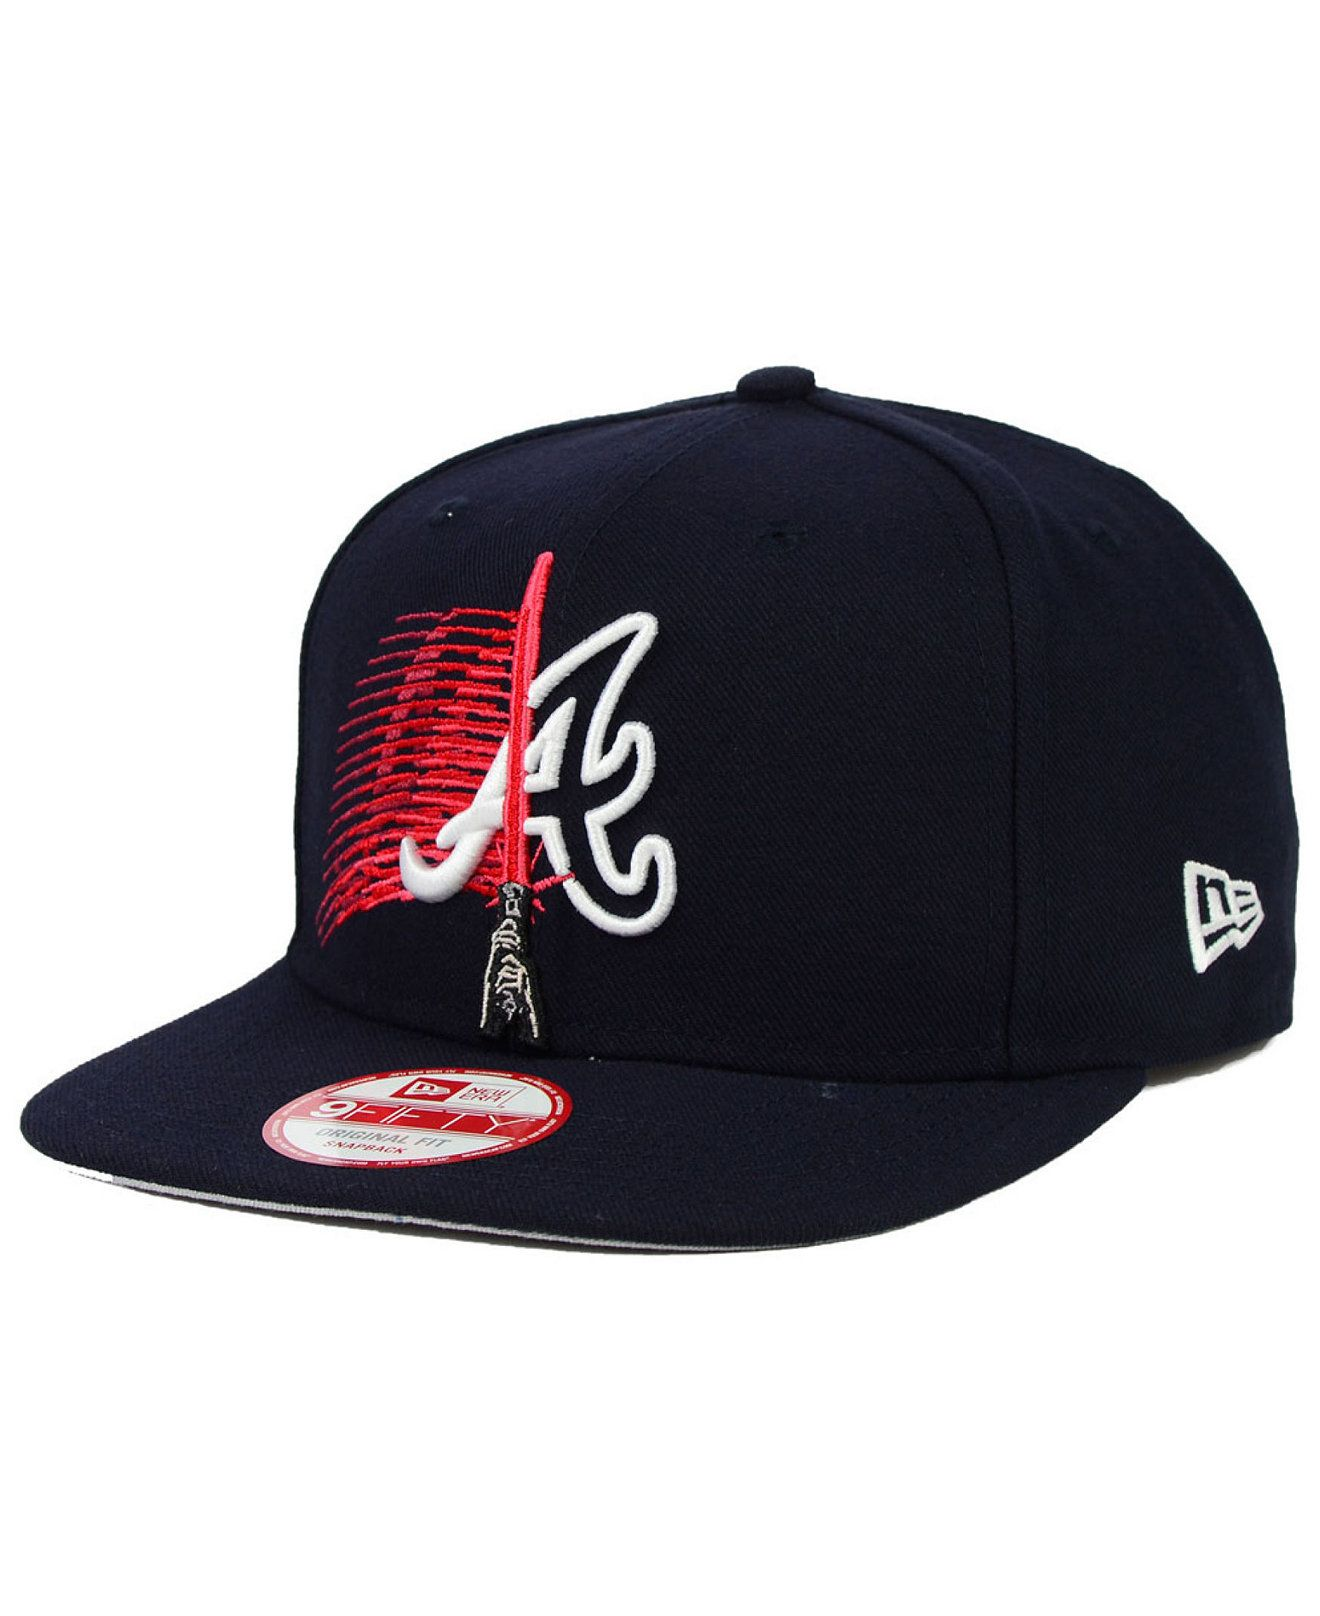 3c64fc657940d ... discount code for new era atlanta braves star wars logoswipe 9fifty  snapback cap sports fan shop